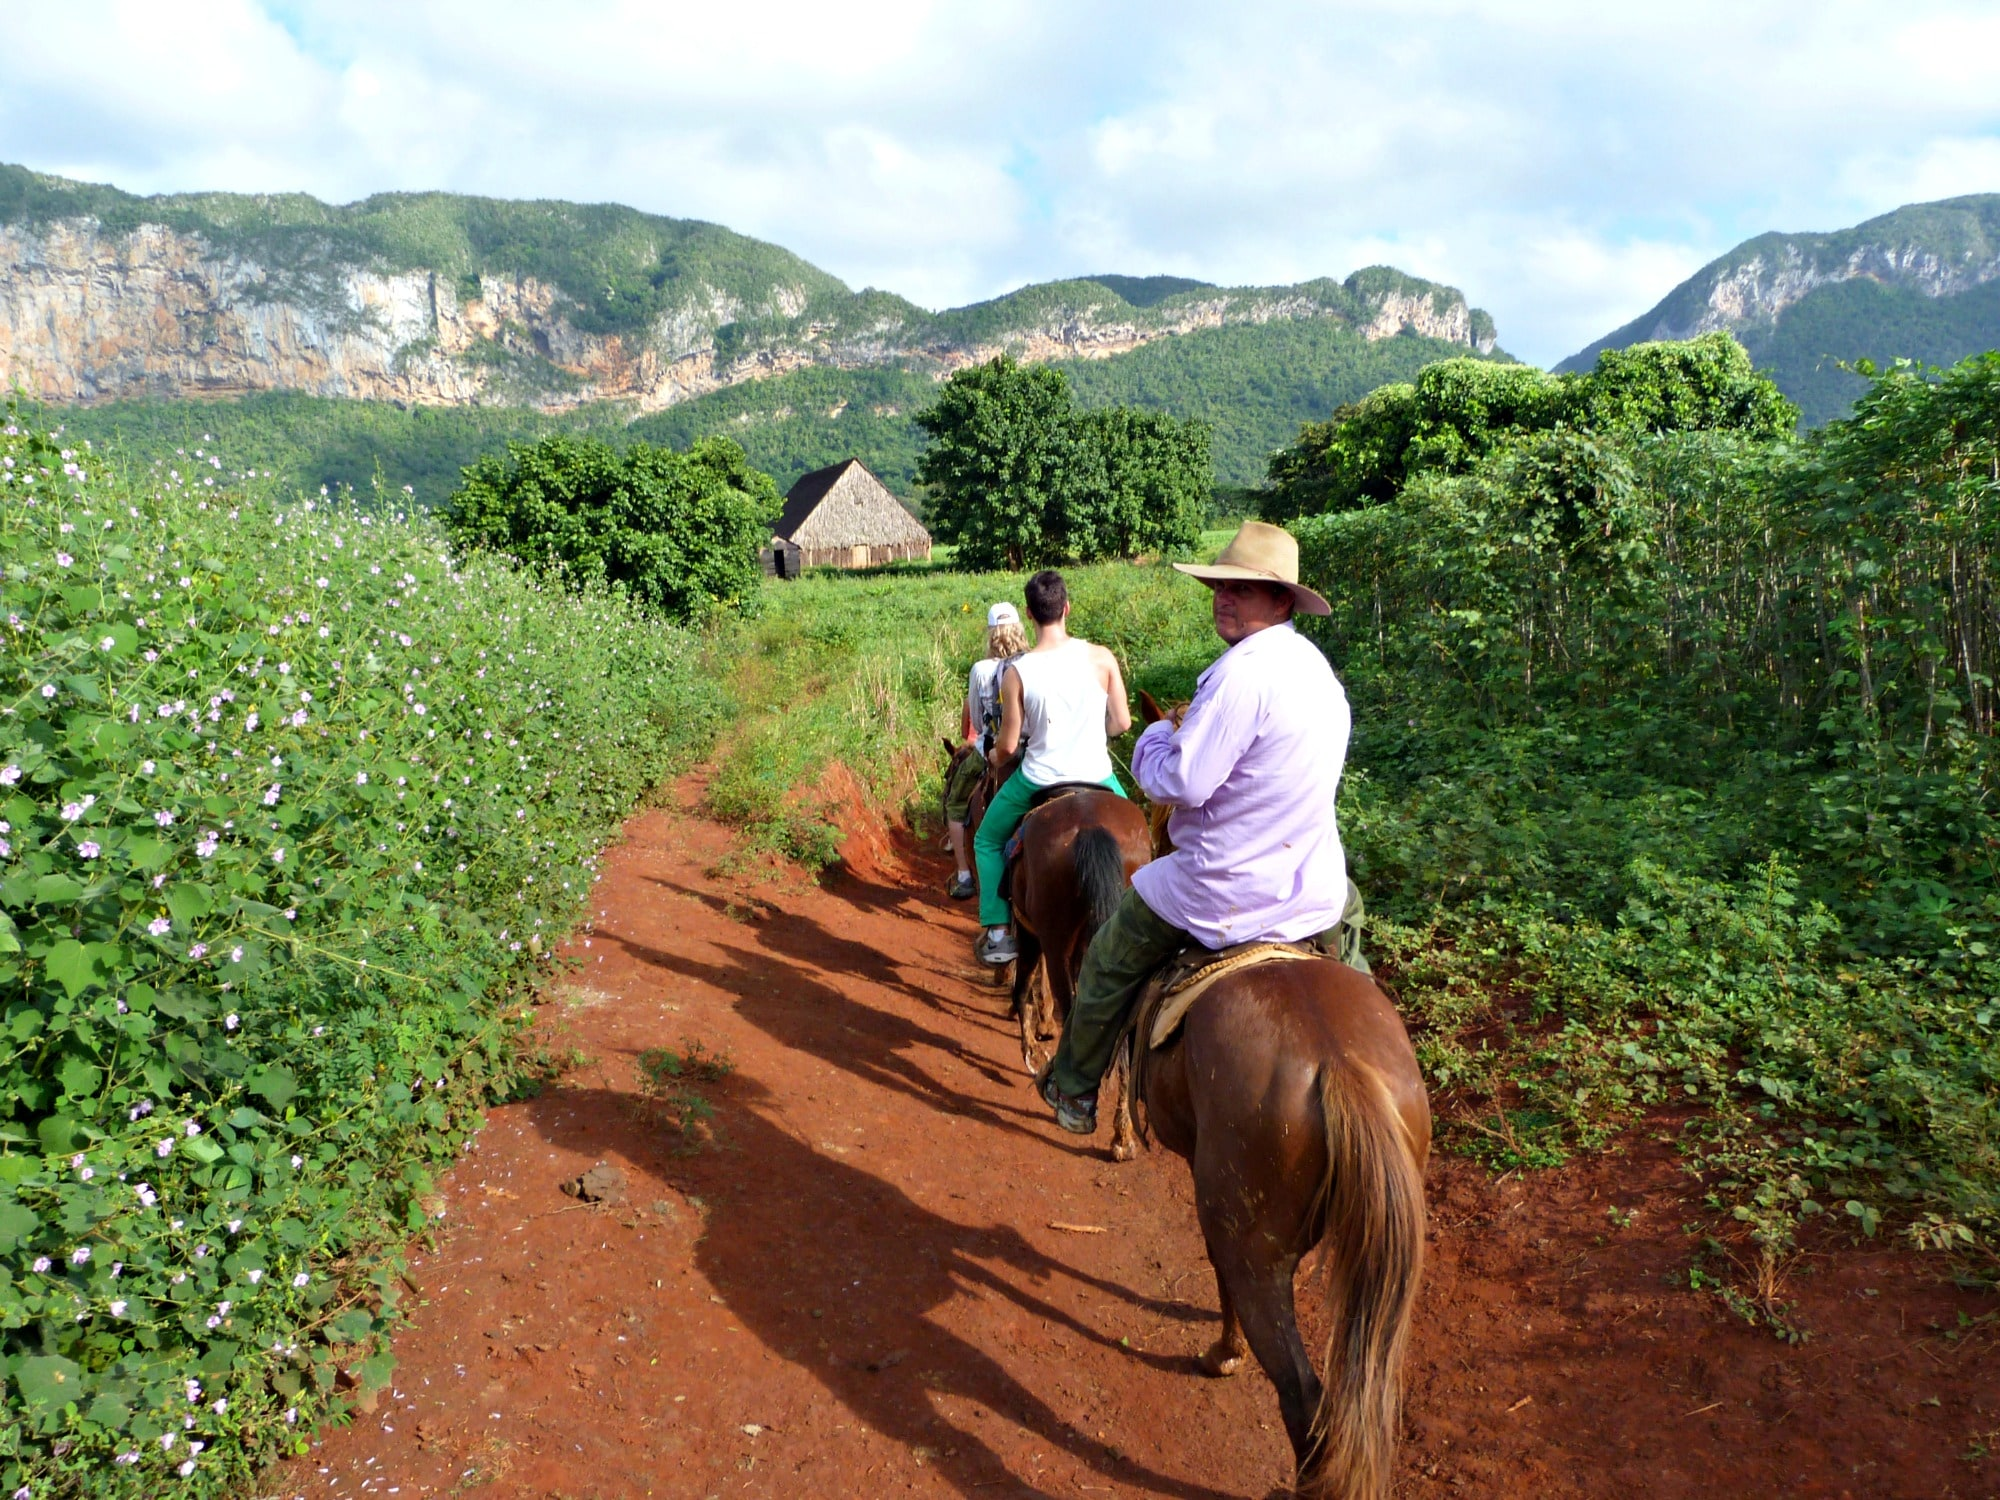 excursion-caballo-vinales-cuba-2